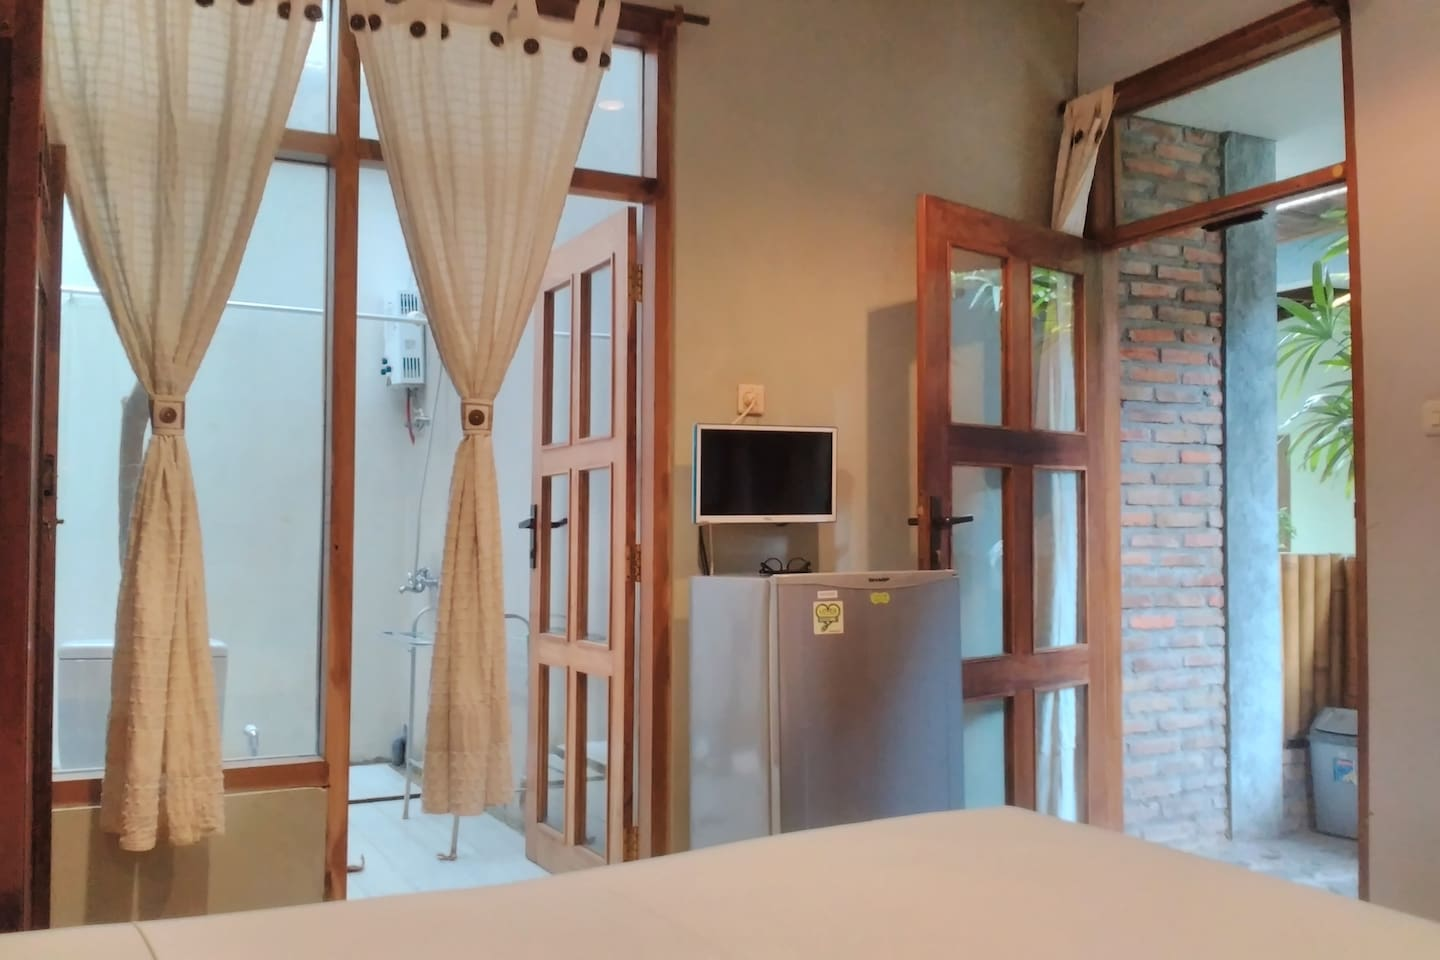 3 x 4 mt Room Dieng with attached 2 x 4mt open natural private bath room of Atmosudomo homestay